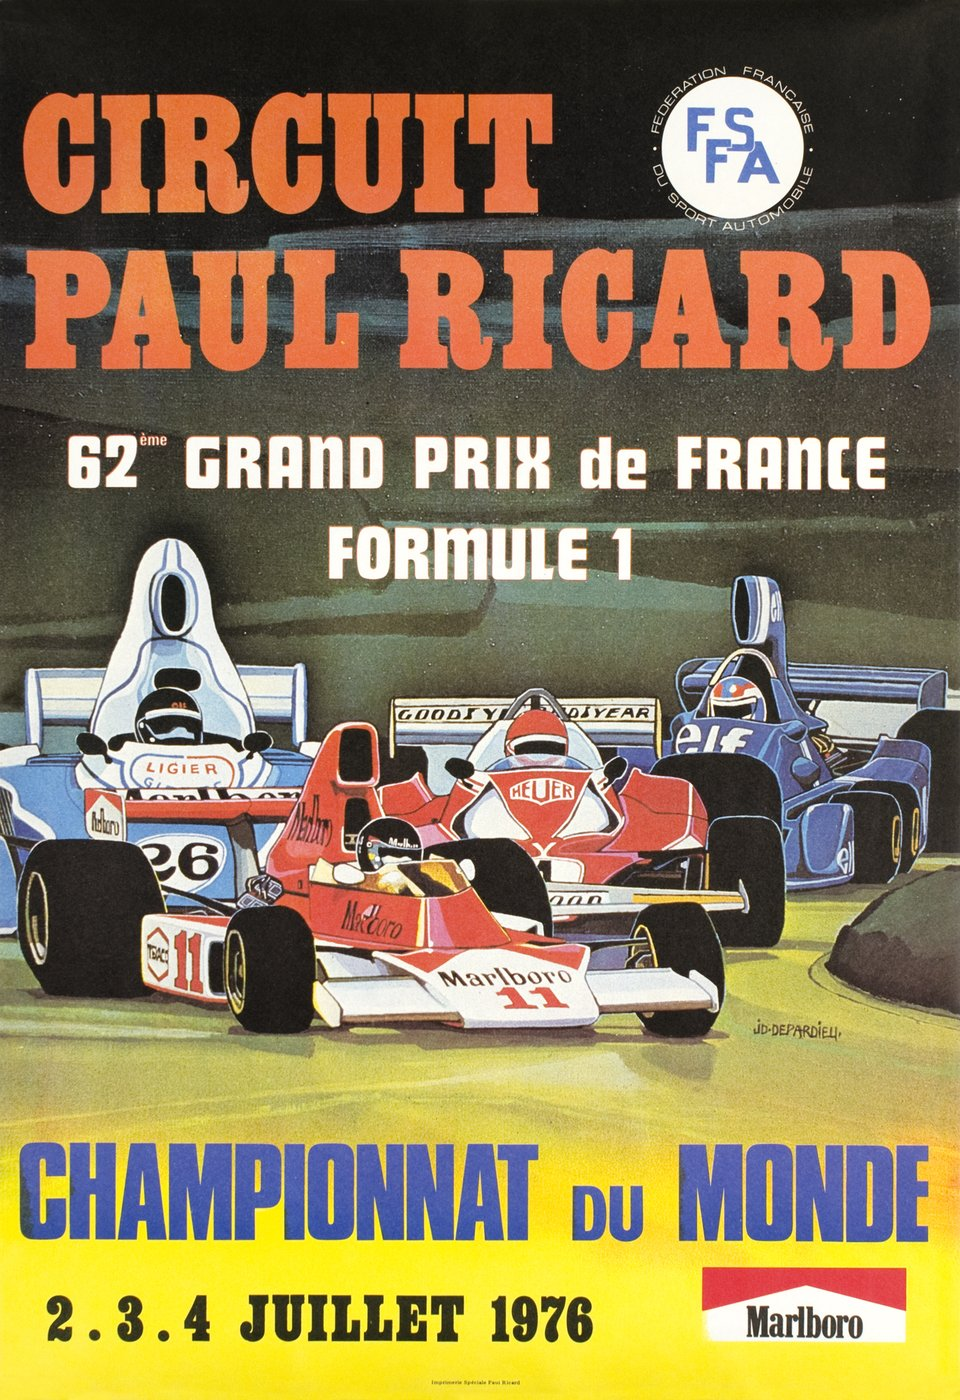 62e Grand Prix de France Formule 1, Circuit Paul Ricard – Affiche ancienne – J.D DEPARDIEU – 1976